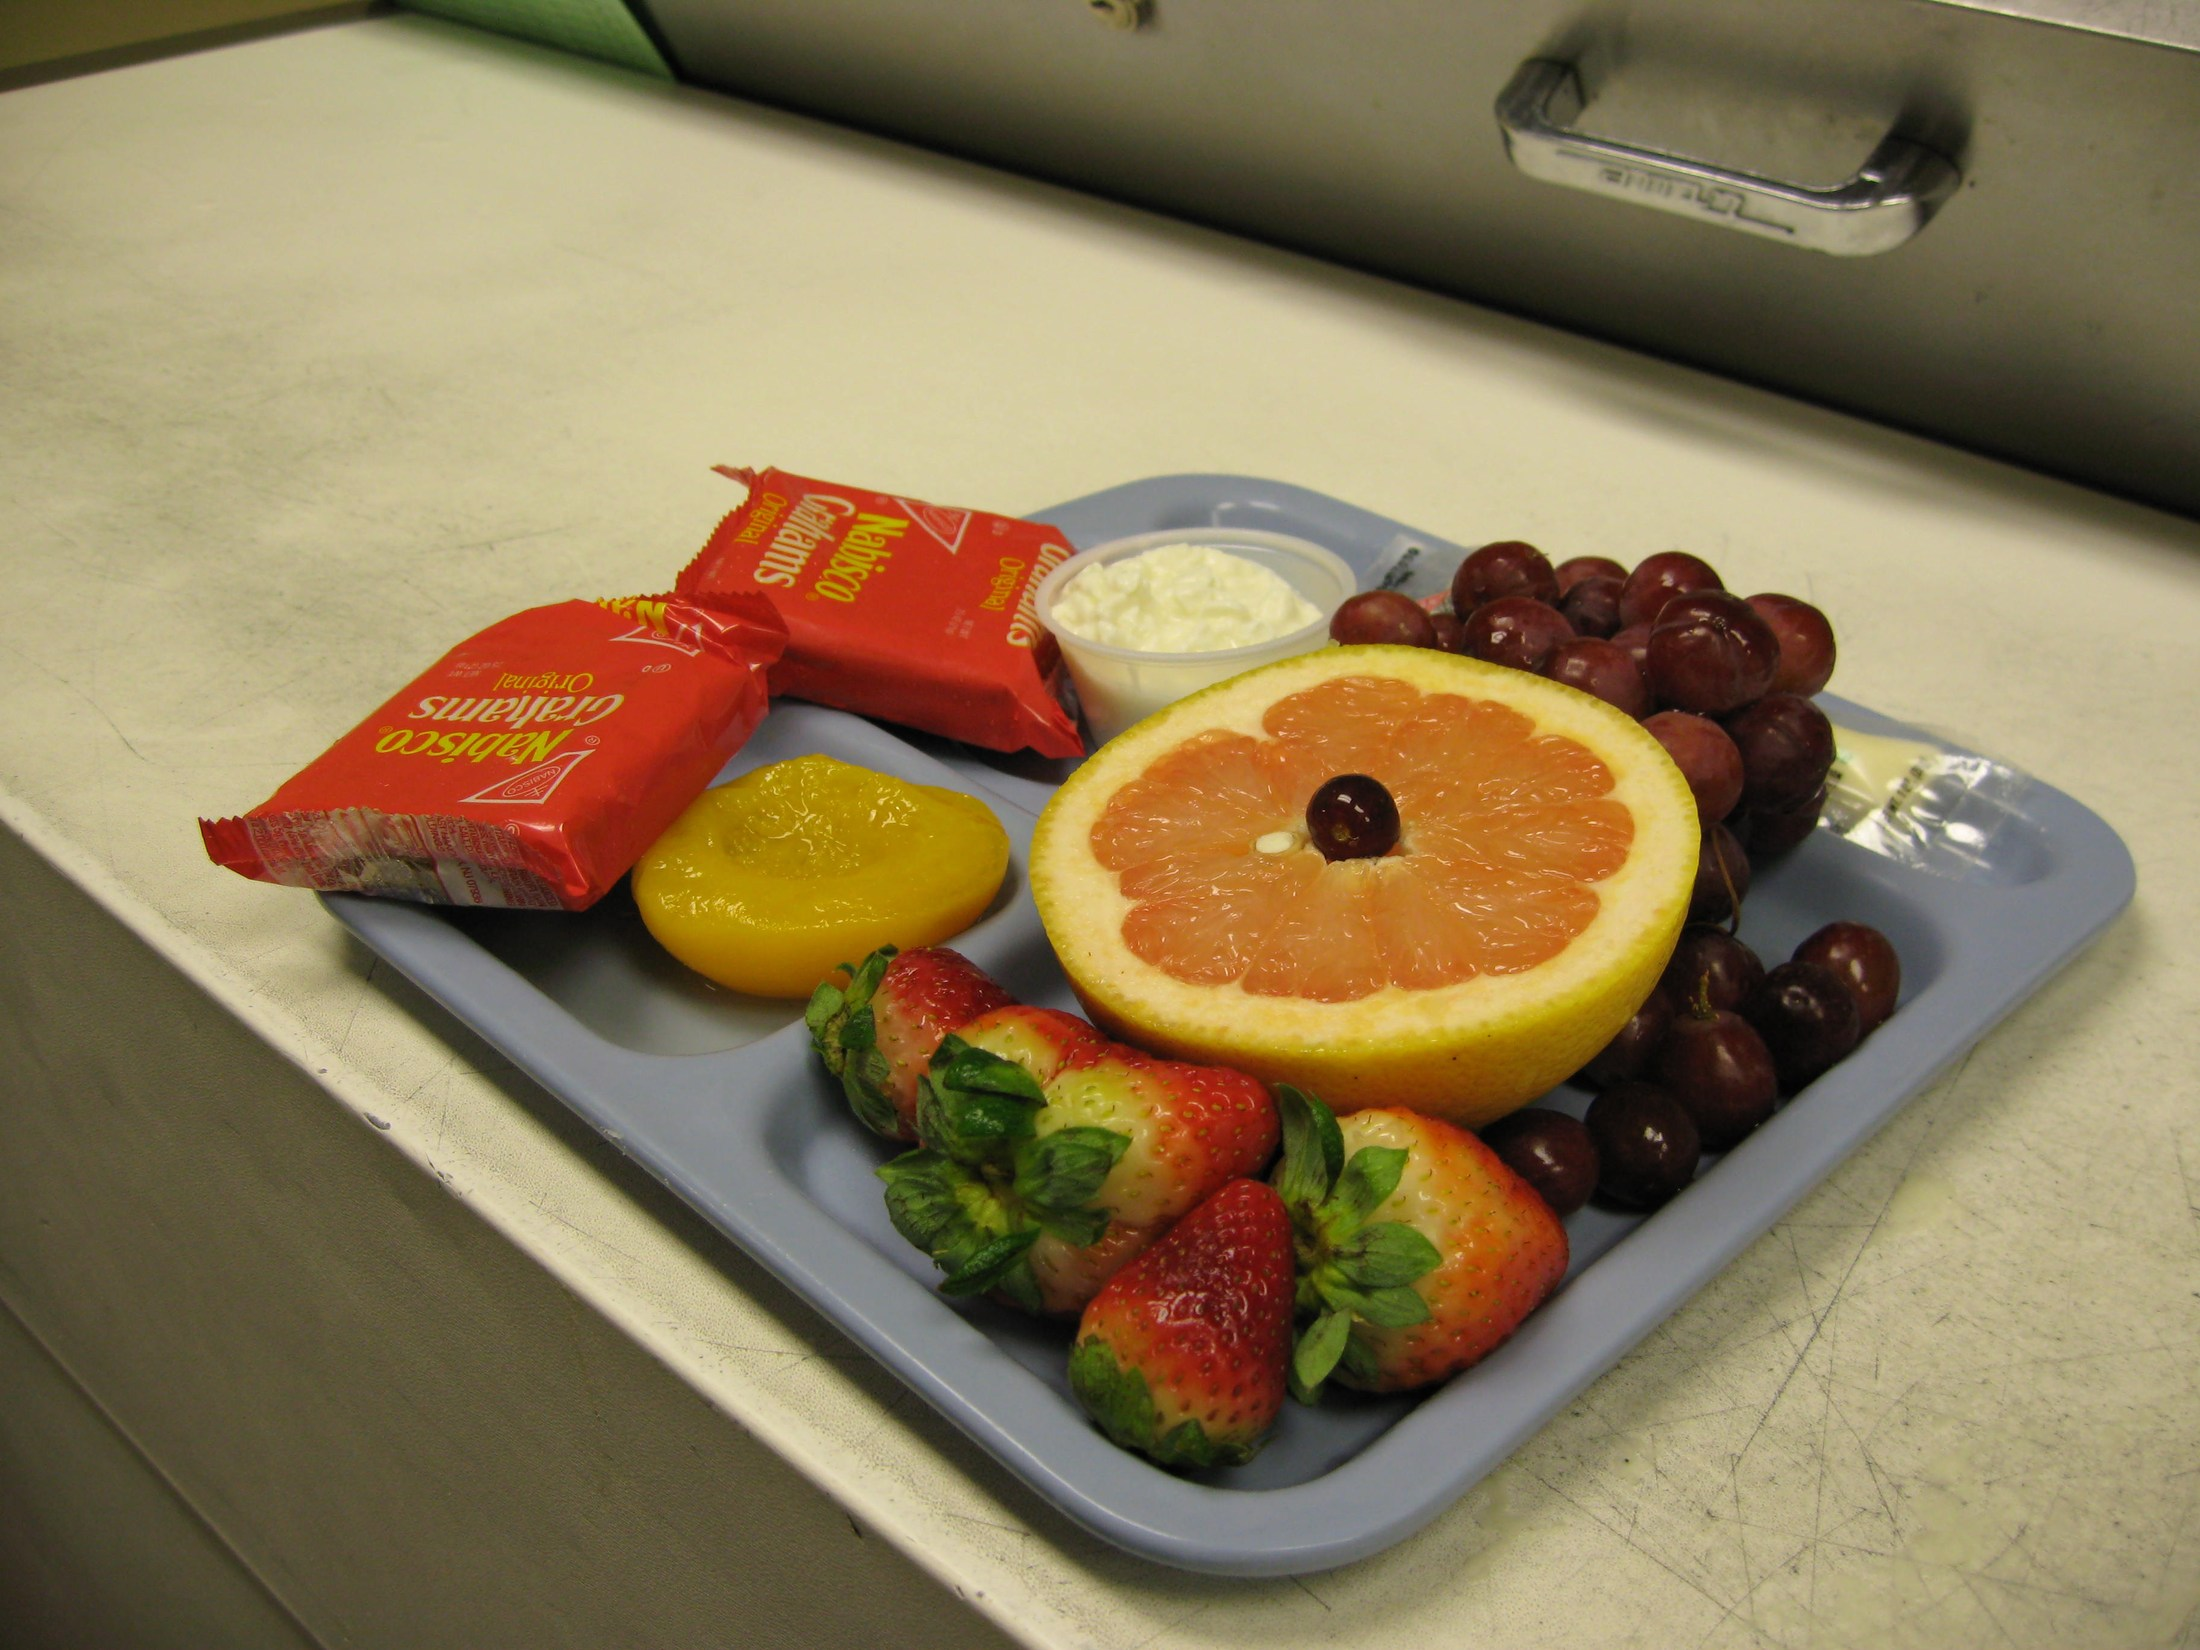 Lunch tray full of fruit and cheese.